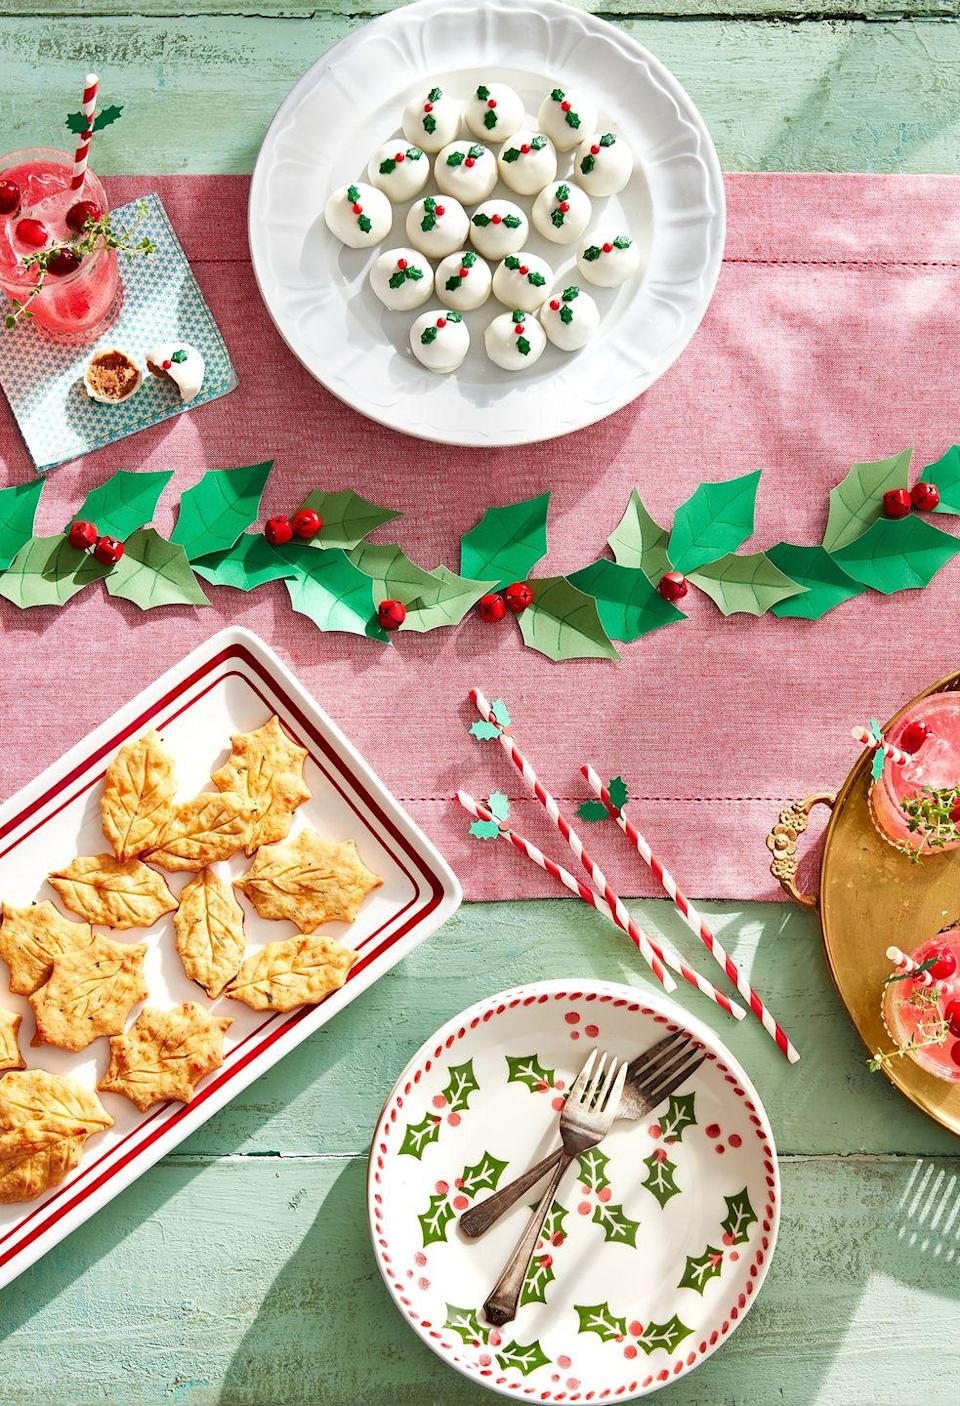 """<p>To express your creativity, make your own leaf garland out of green craft paper. Add red jingle bells to finish the festive look.</p><p><a class=""""link rapid-noclick-resp"""" href=""""https://go.redirectingat.com?id=74968X1596630&url=https%3A%2F%2Fwww.michaels.com%2Fcreatology-construction-paper-9-in-x-12-in-yellow%2F10625533.html&sref=https%3A%2F%2Fwww.goodhousekeeping.com%2Fholidays%2Fchristmas-ideas%2Fhow-to%2Fg2196%2Fchristmas-table-settings%2F"""" rel=""""nofollow noopener"""" target=""""_blank"""" data-ylk=""""slk:SHOP GREEN CRAFT PAPER"""">SHOP GREEN CRAFT PAPER</a></p>"""